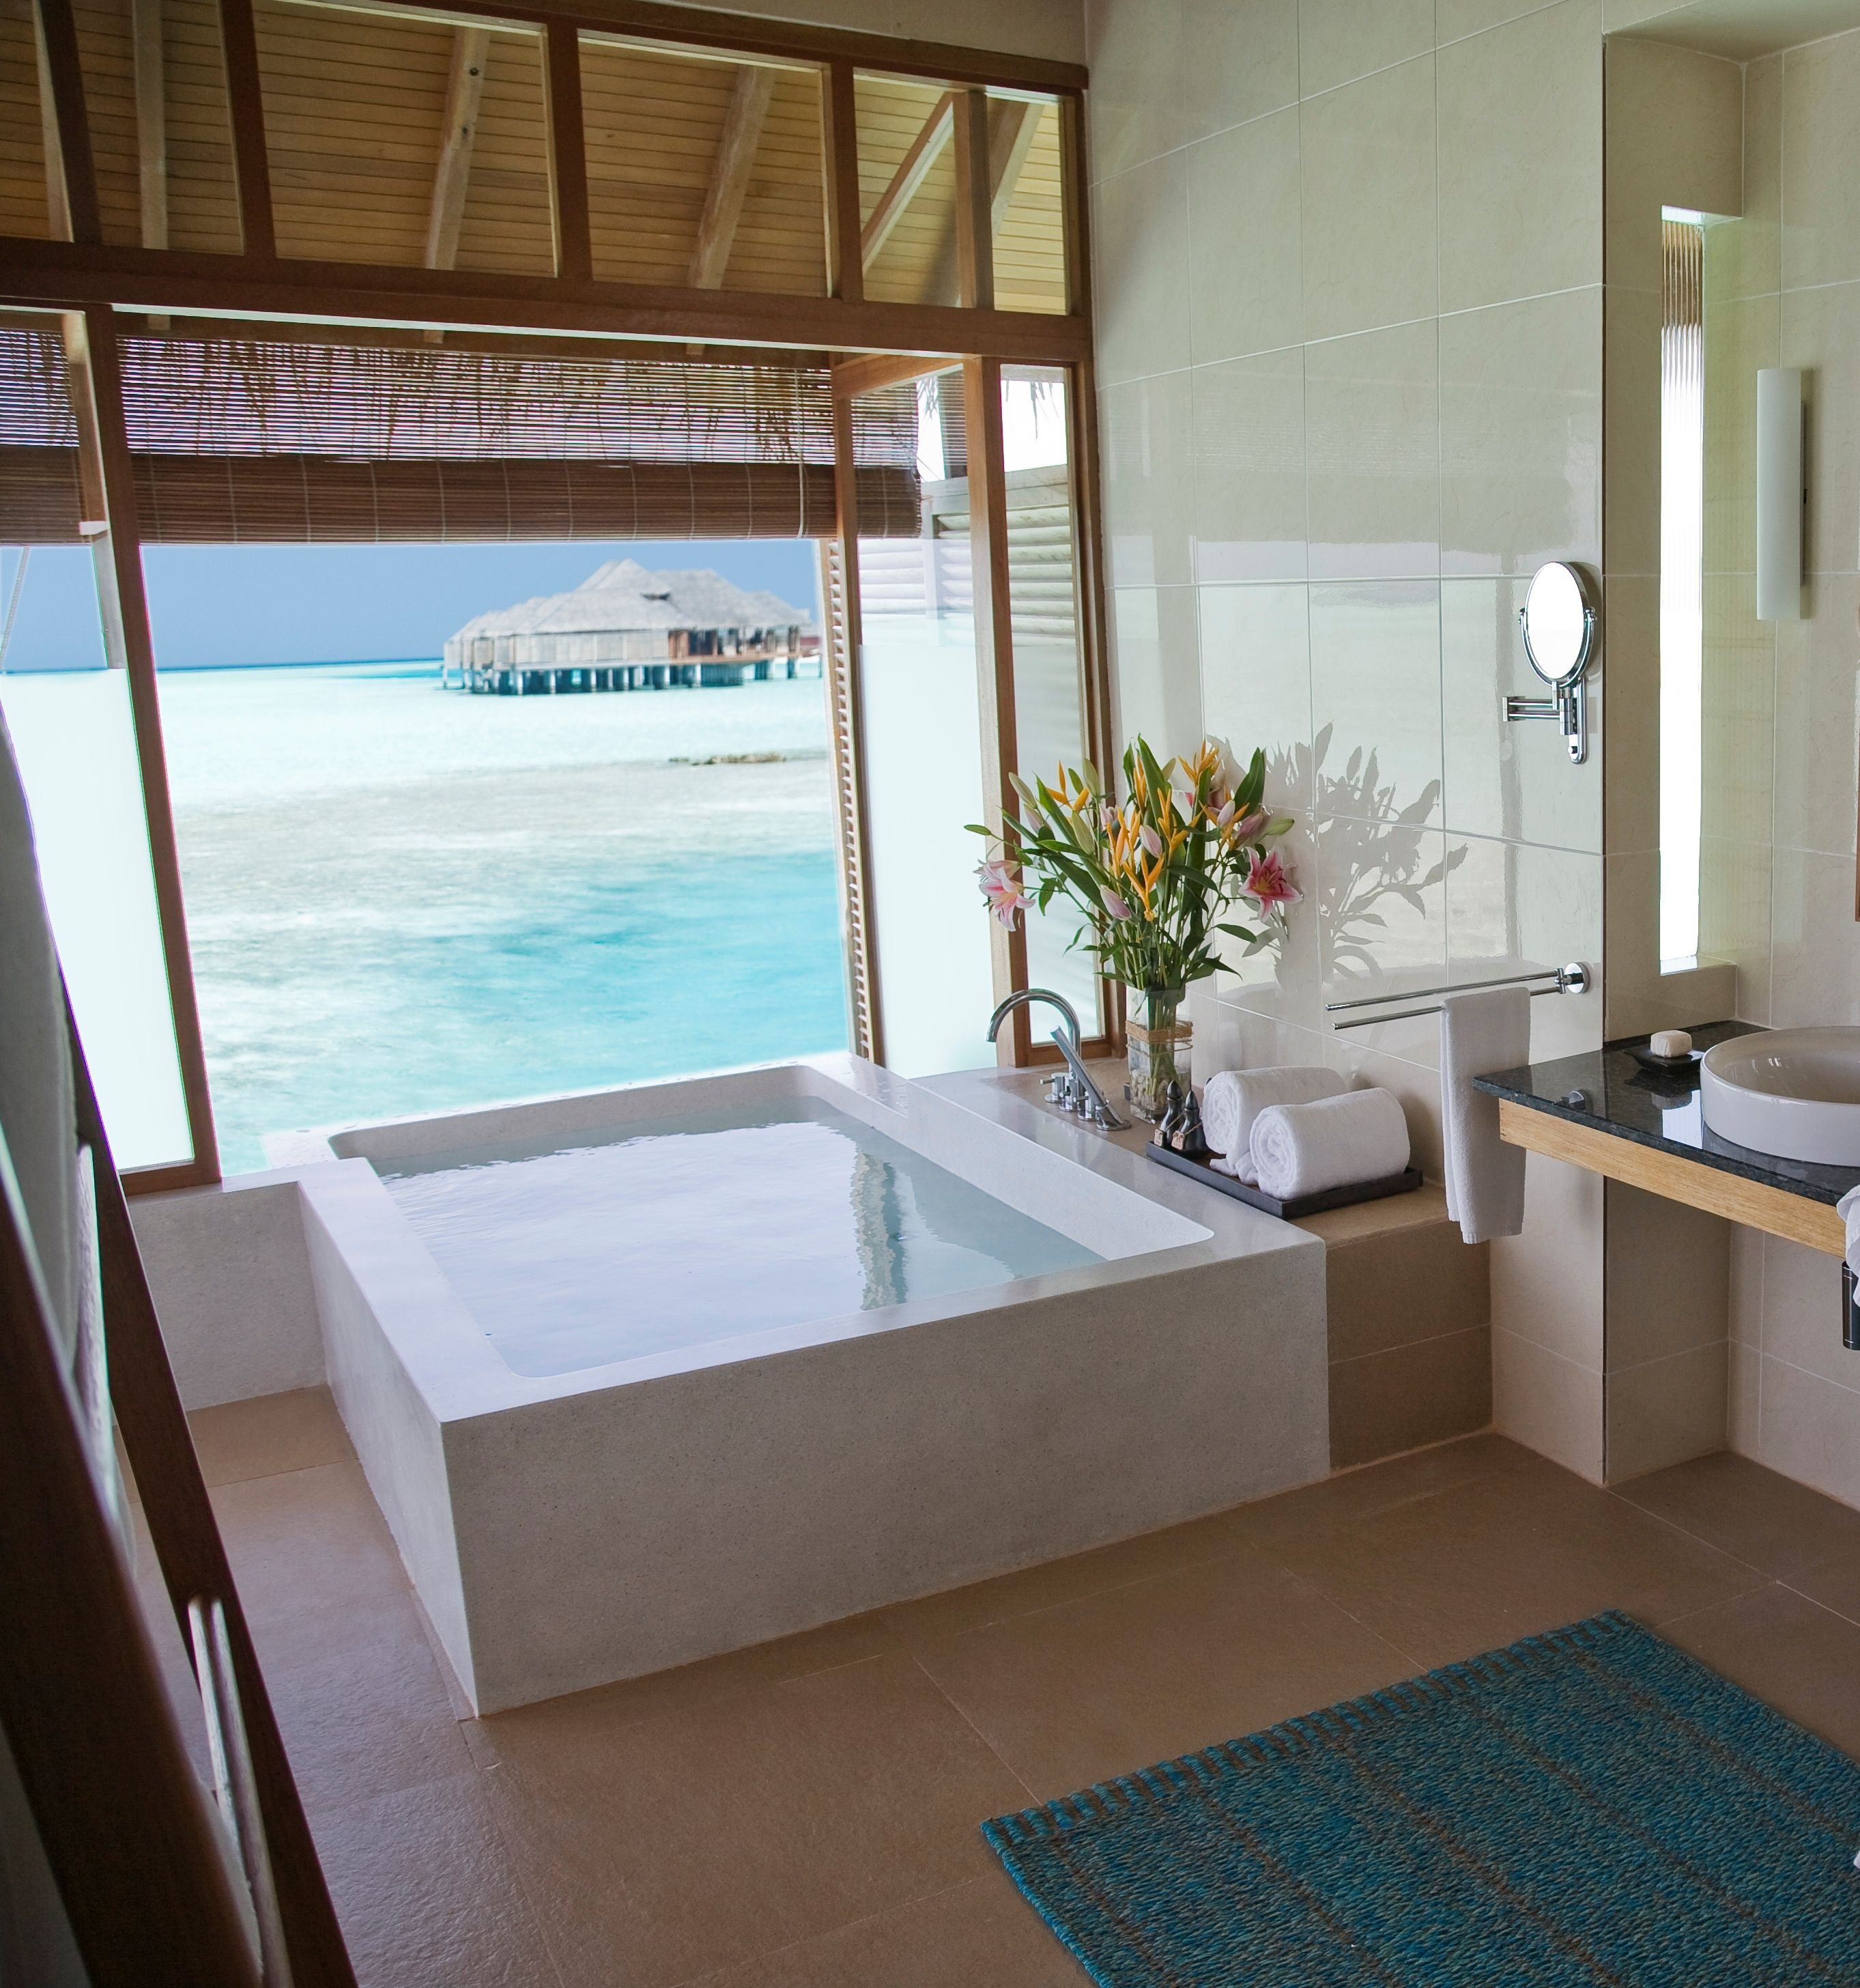 View Bathroom Designs Fascinating Amazing Sea View Bathroom Design In Our Over Water Bungalow At Decorating Design